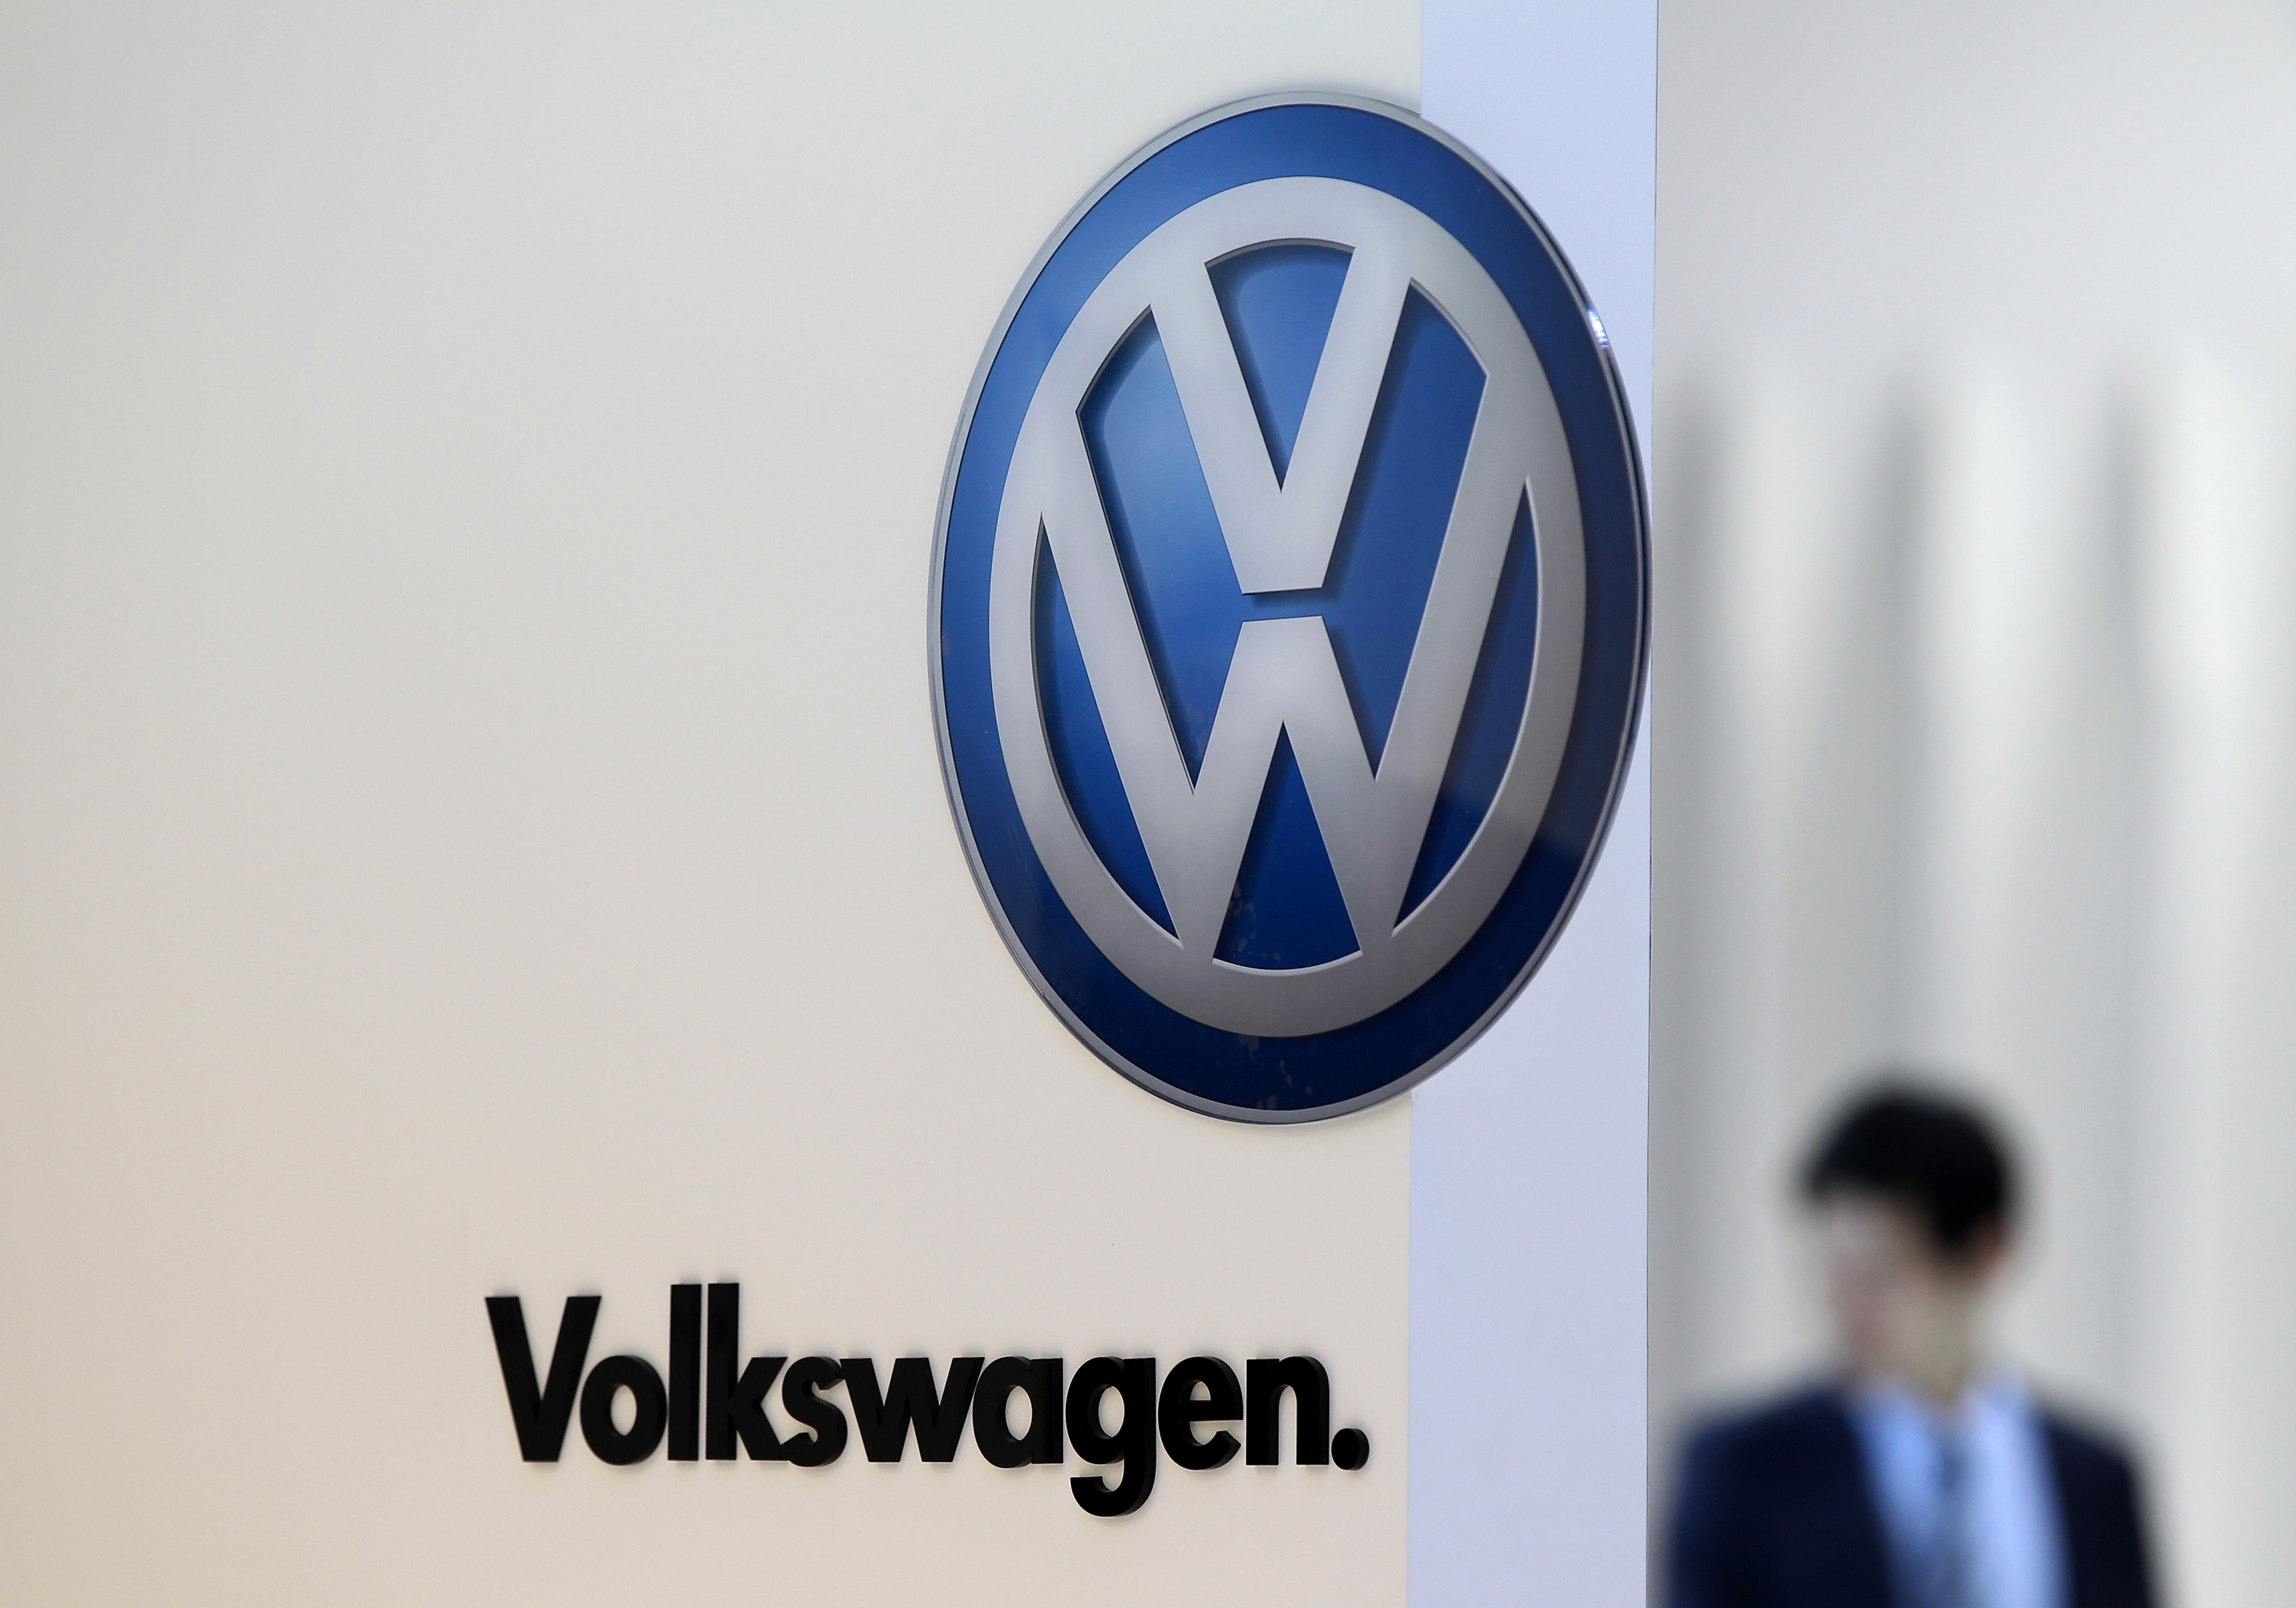 The Volkswagen AG logo is displayed at the company's booth during the media preview of the 2012 Busan International Motor Show in Busan, South Korea, on May 24, 2012.